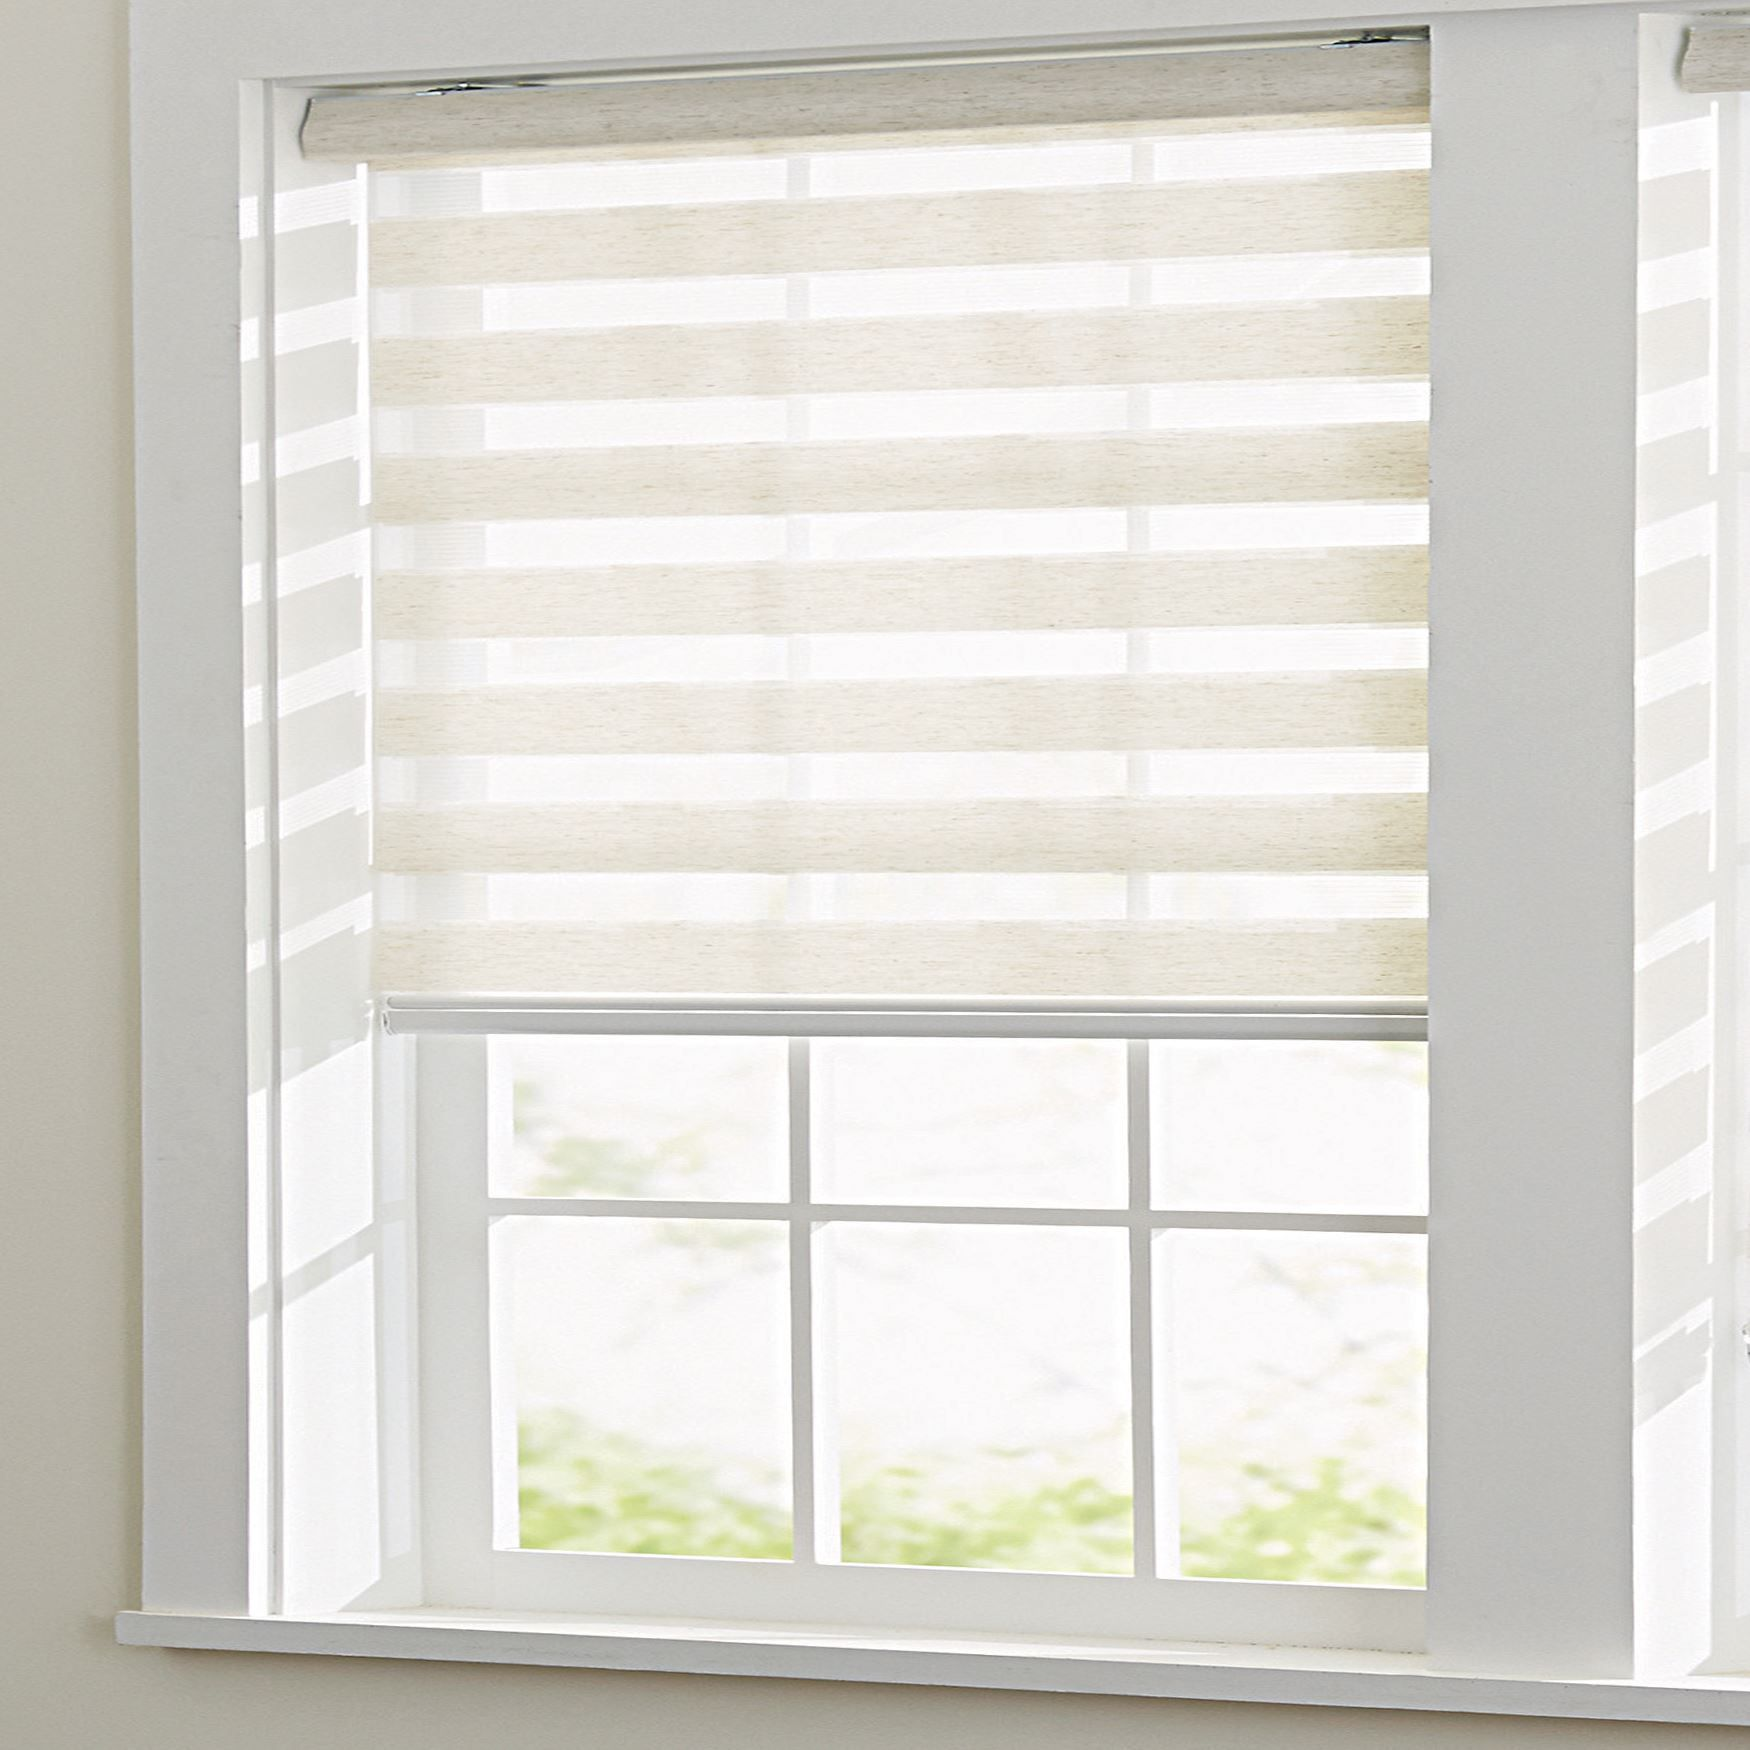 Basement Blinds Window Blinds Shades Horizontal Vertical Blinds For Your